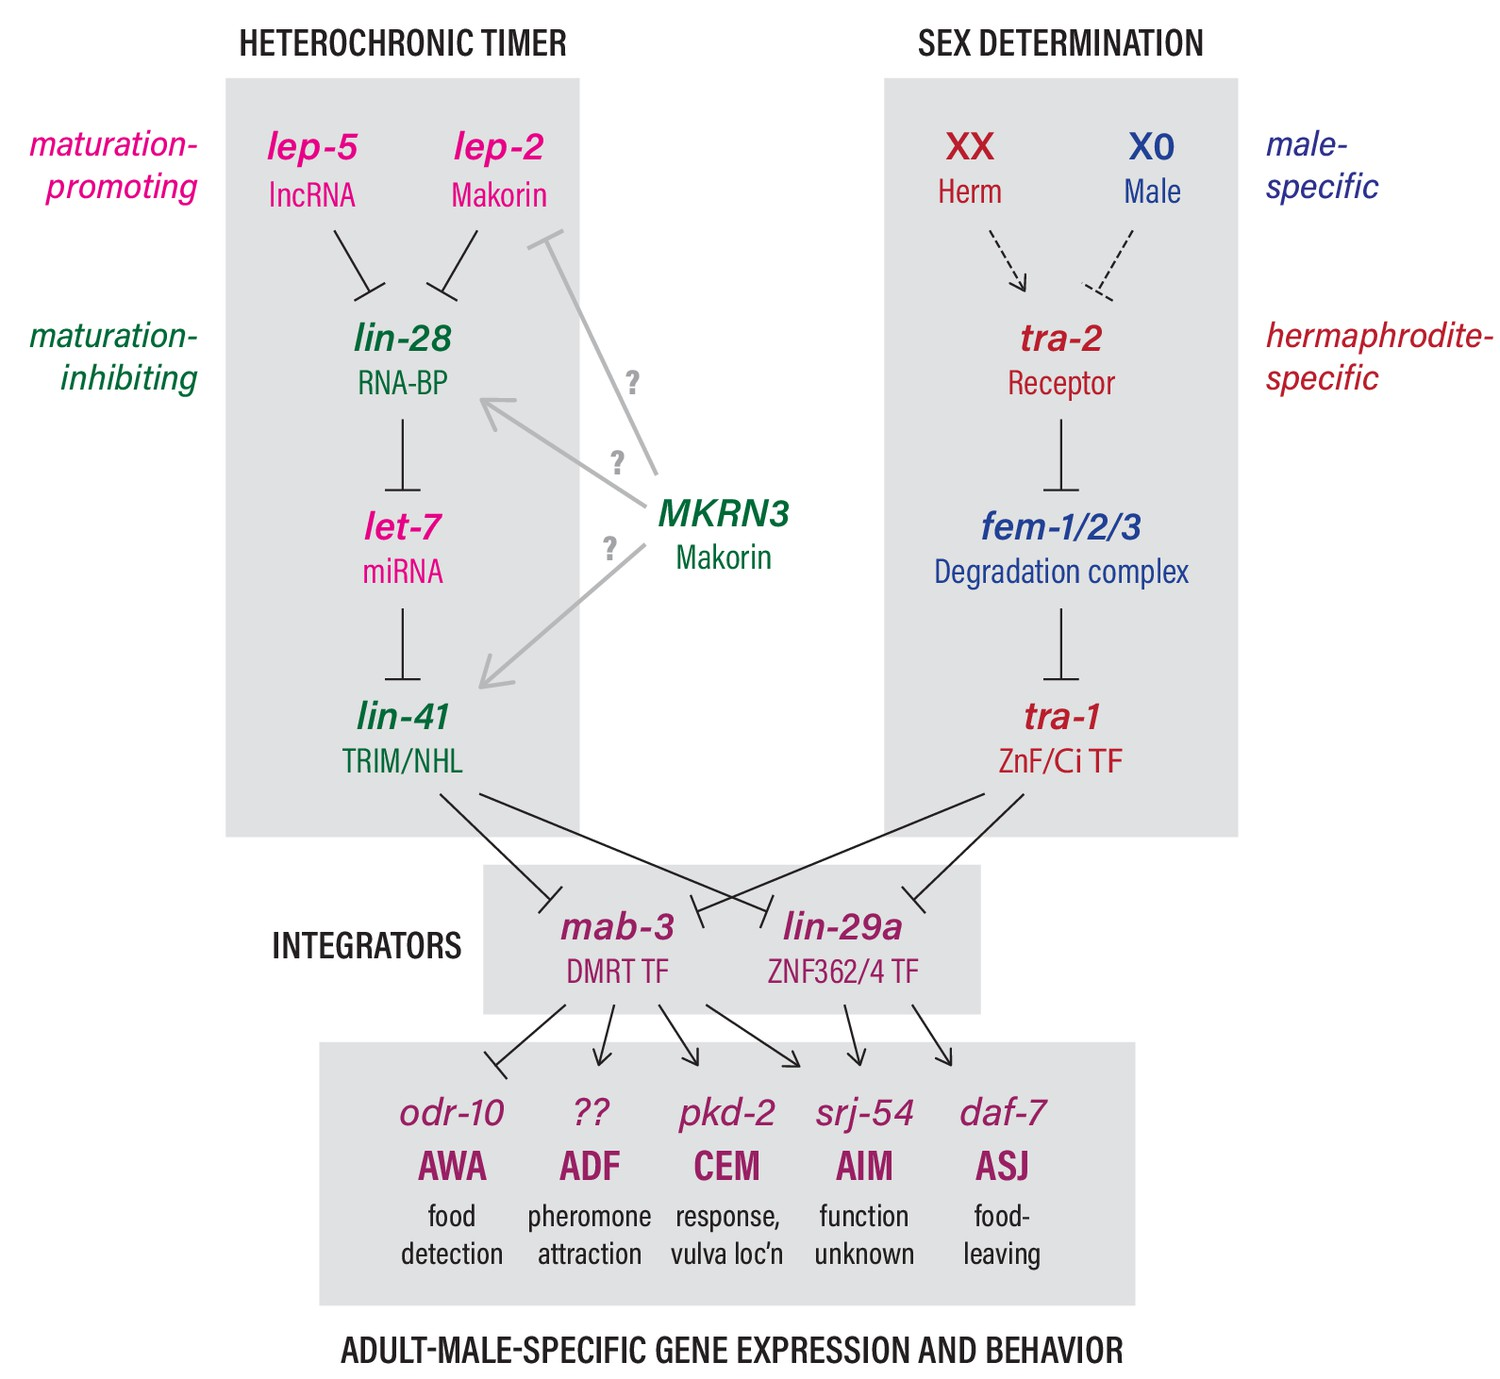 The Makorin lep-2 and the lncRNA lep-5 regulate lin-28 to schedule